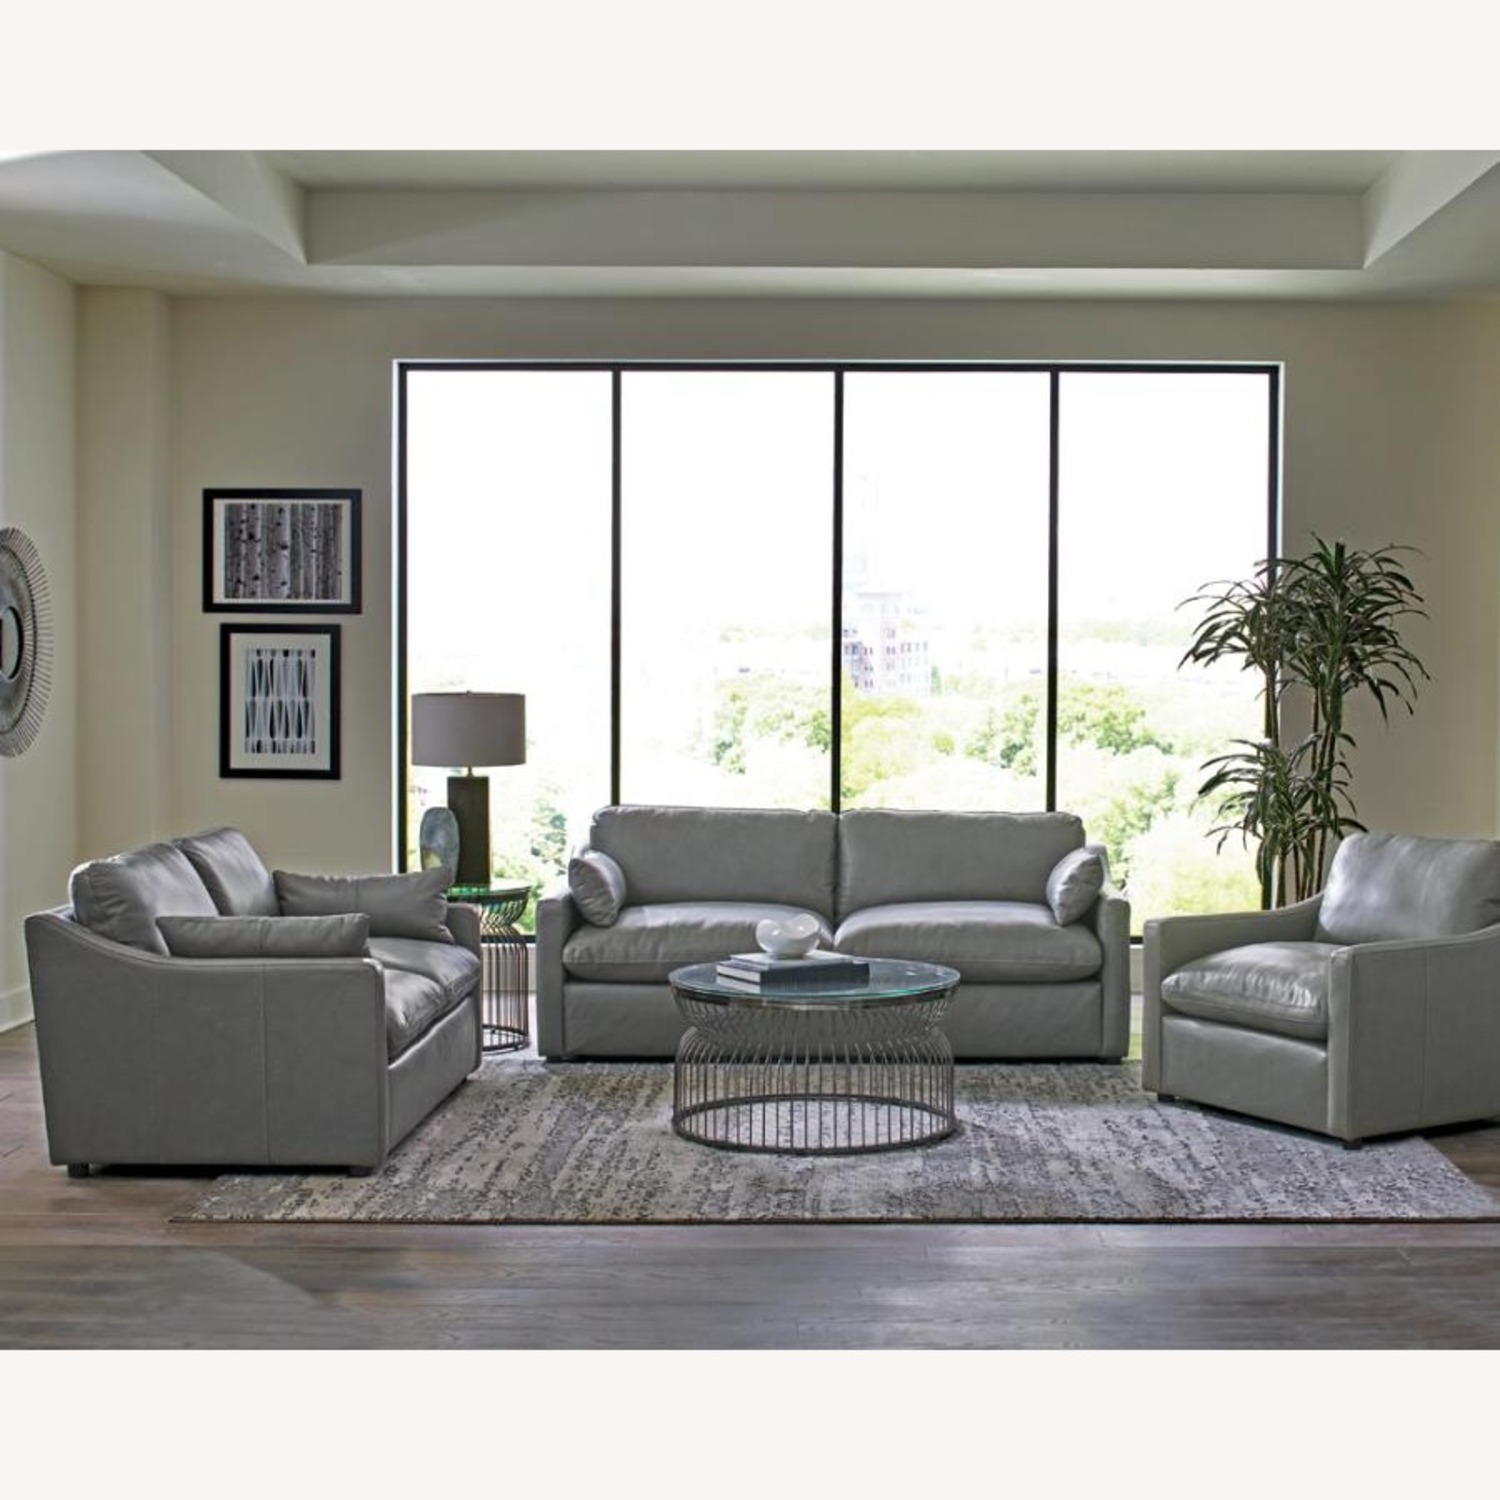 Loveseat In Grey Leatherette Upholstery - image-2